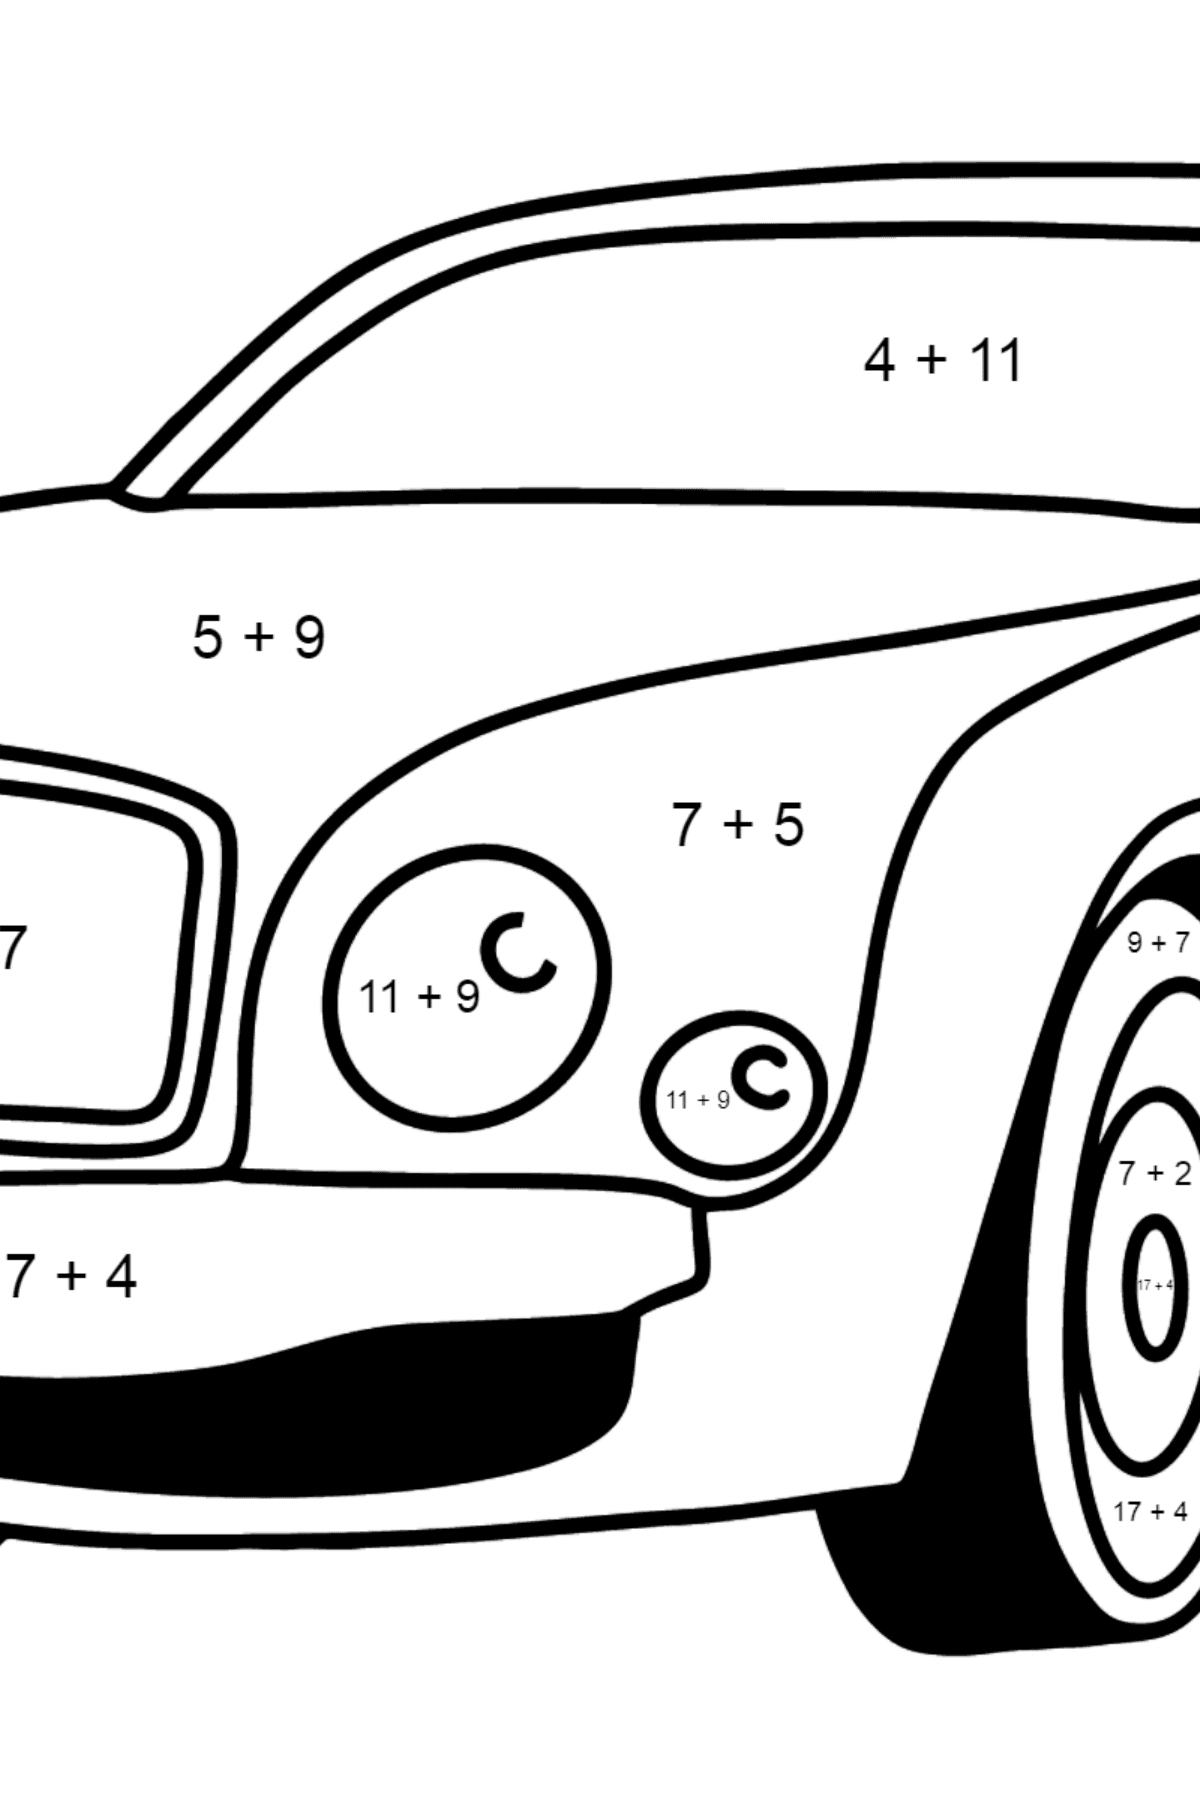 Bentley Mulsanne Car Coloring Page - Math Coloring - Addition for Kids